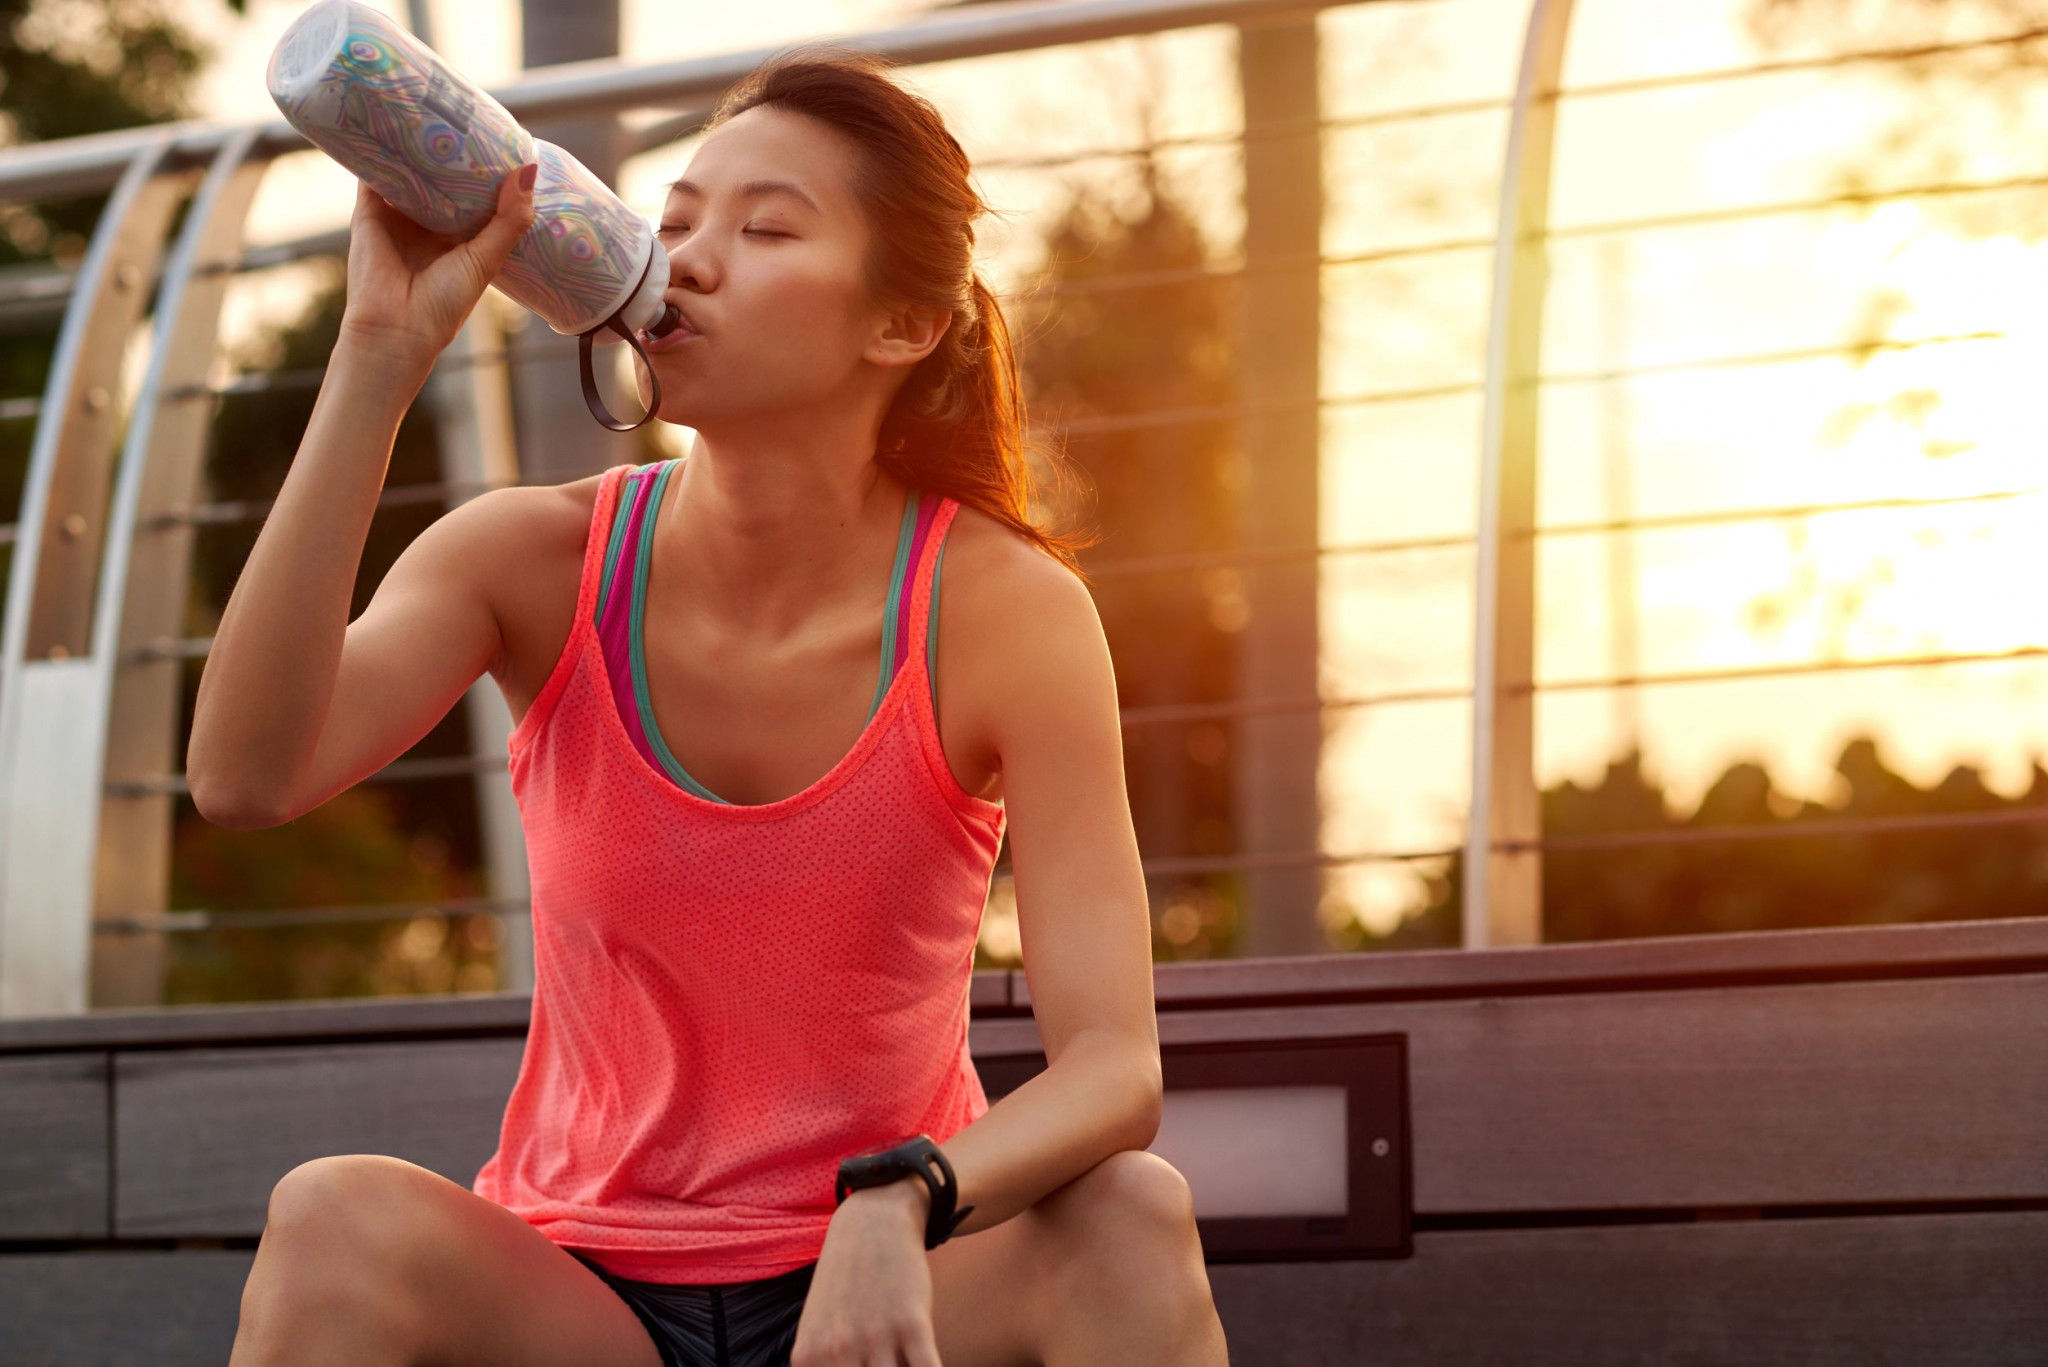 asian-chinese-woman-sitting-outdoors-resting-drinking-water-bottle-after-morning-run